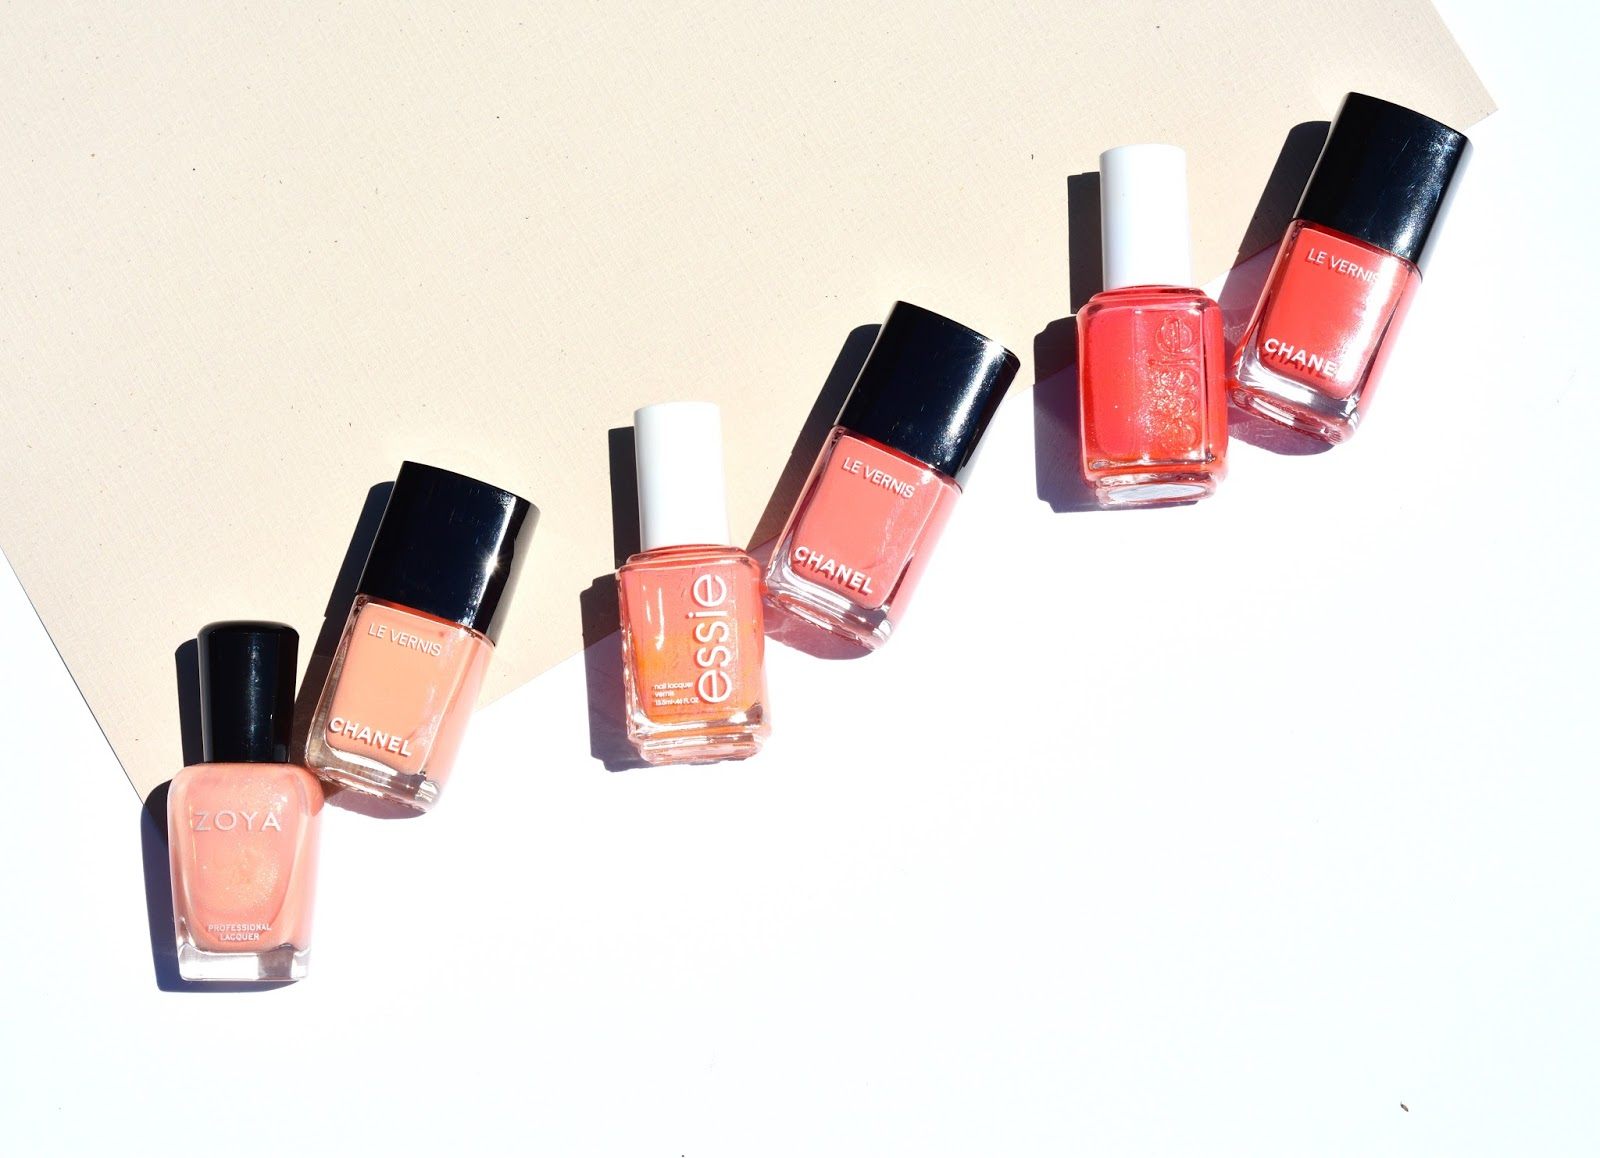 chanel summer 2017 cruise collection makeup review swatches nail polish dupe coquillage sea whip coralium